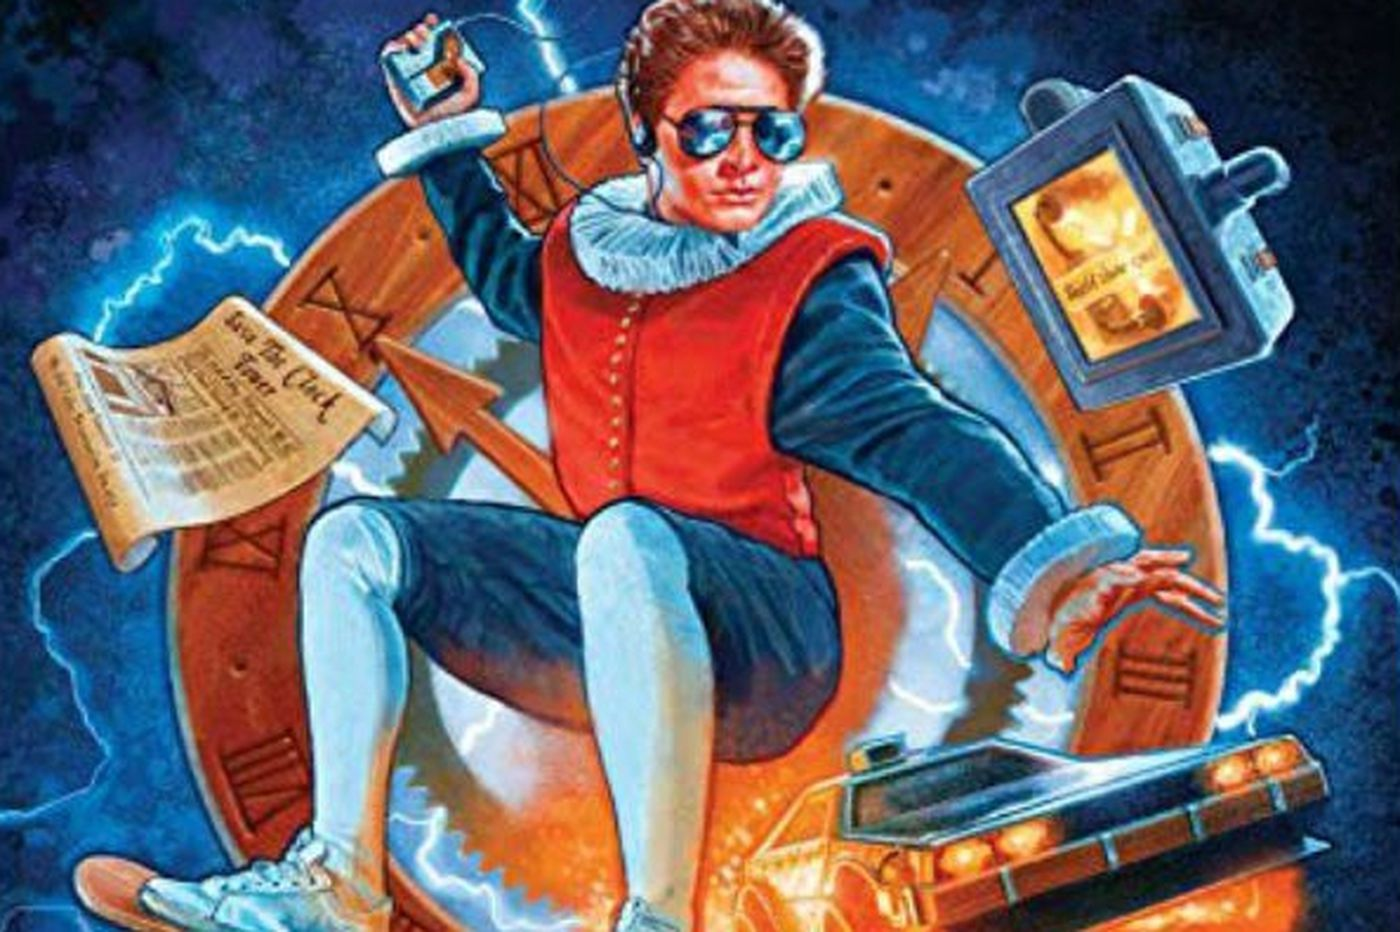 Shakespeare meets 'Back to the Future' and 'Mean Girls' in the latest from Philly's Quirk Books